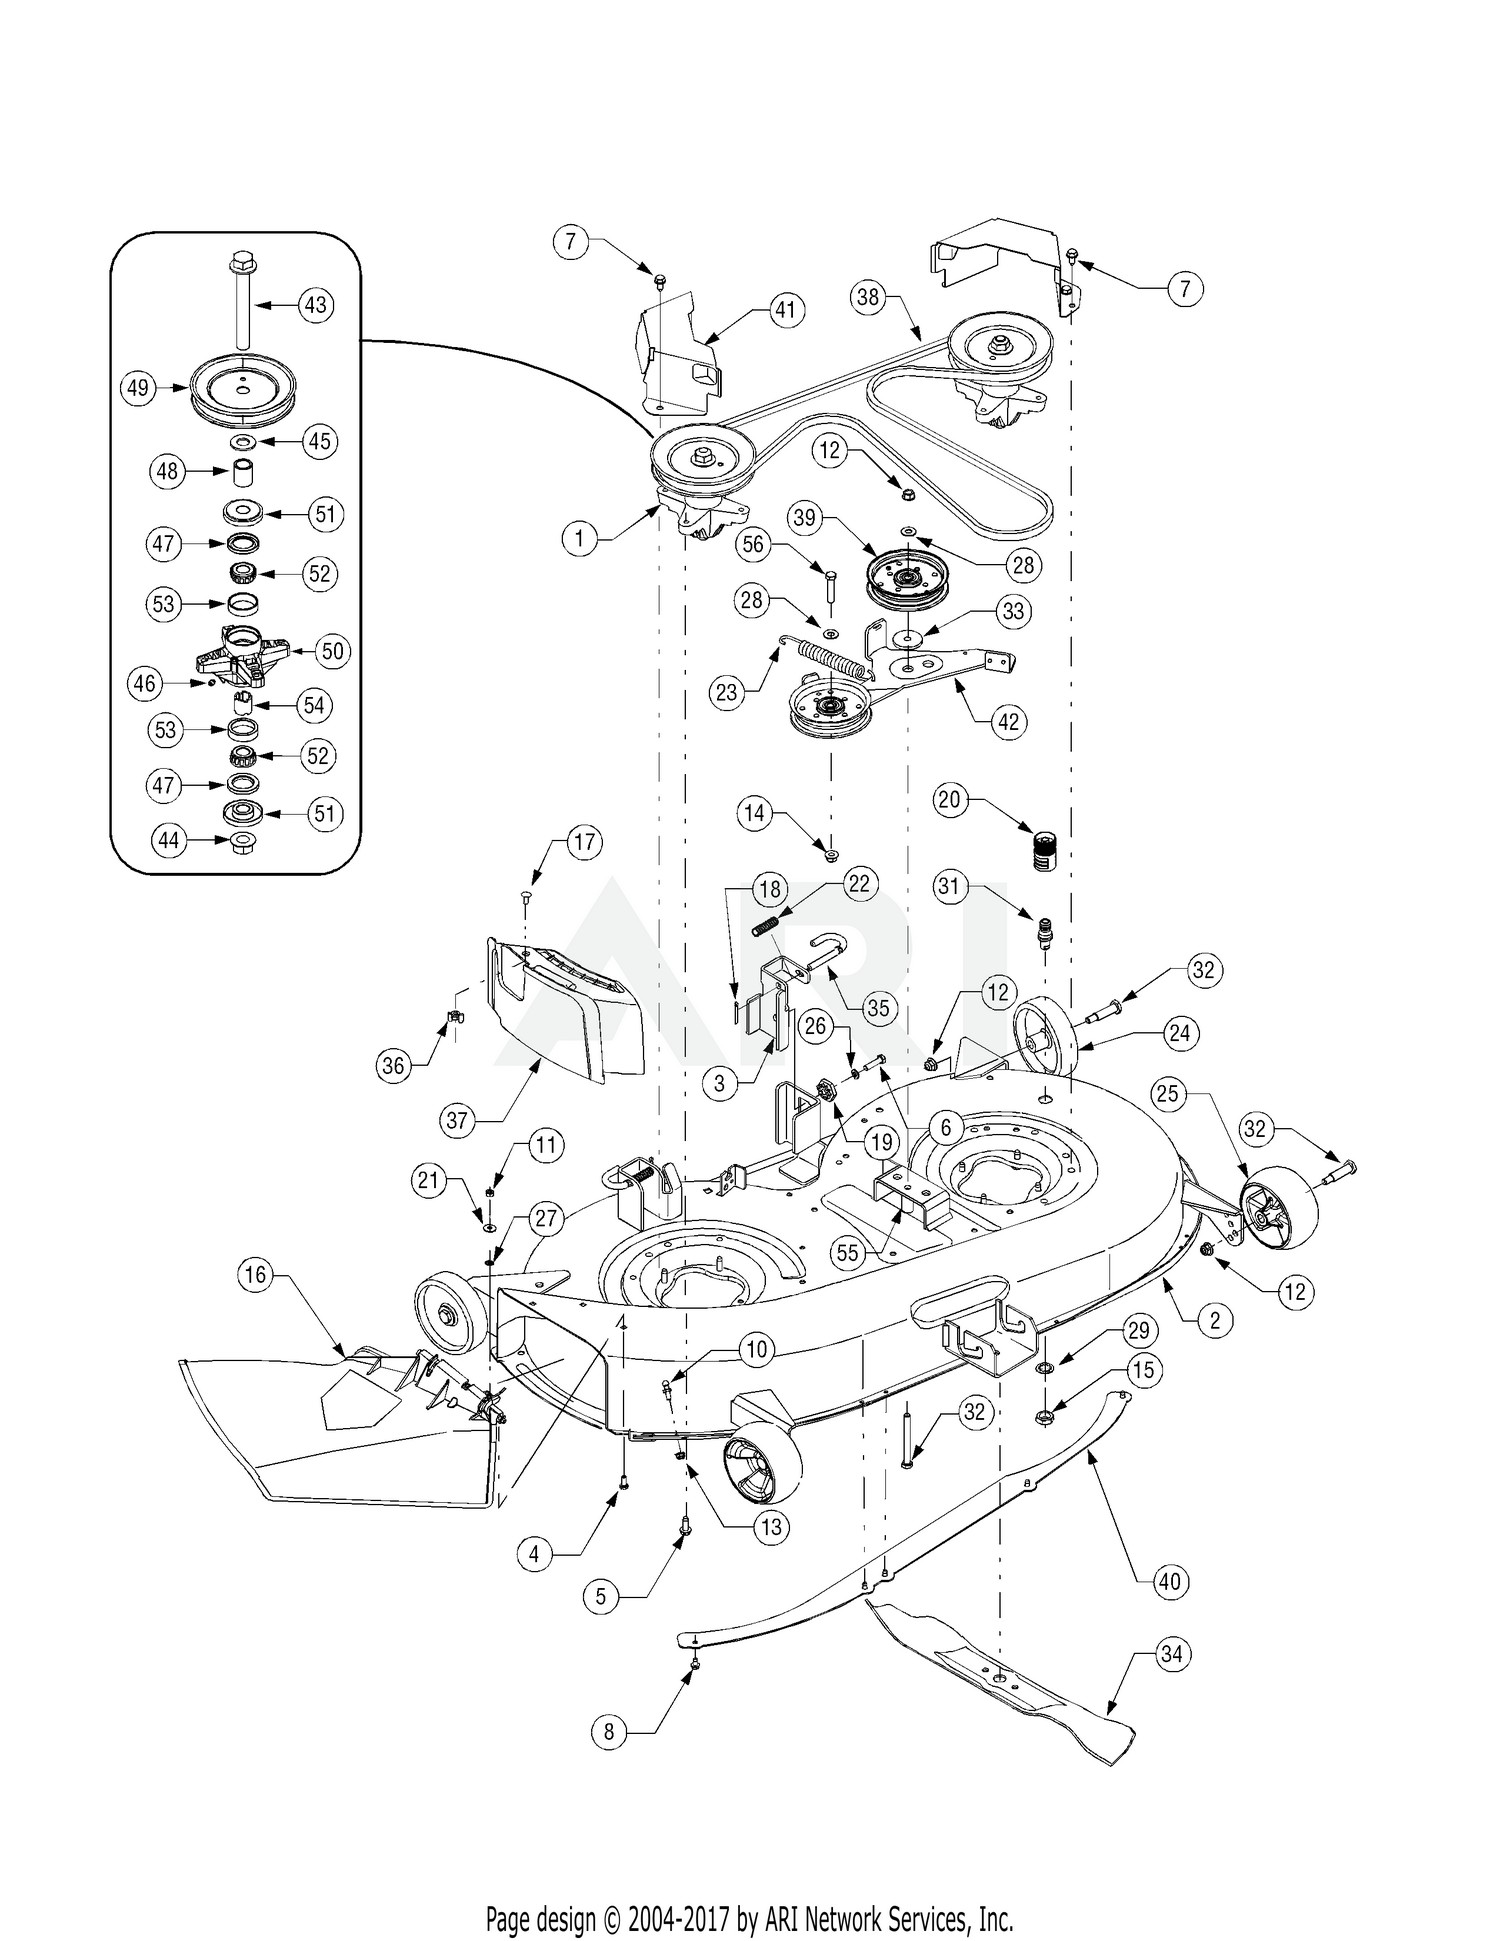 Cub Cadet Lt1042 Mower Deck Diagram Electrical Wiring For Ltx 1042 Parts My